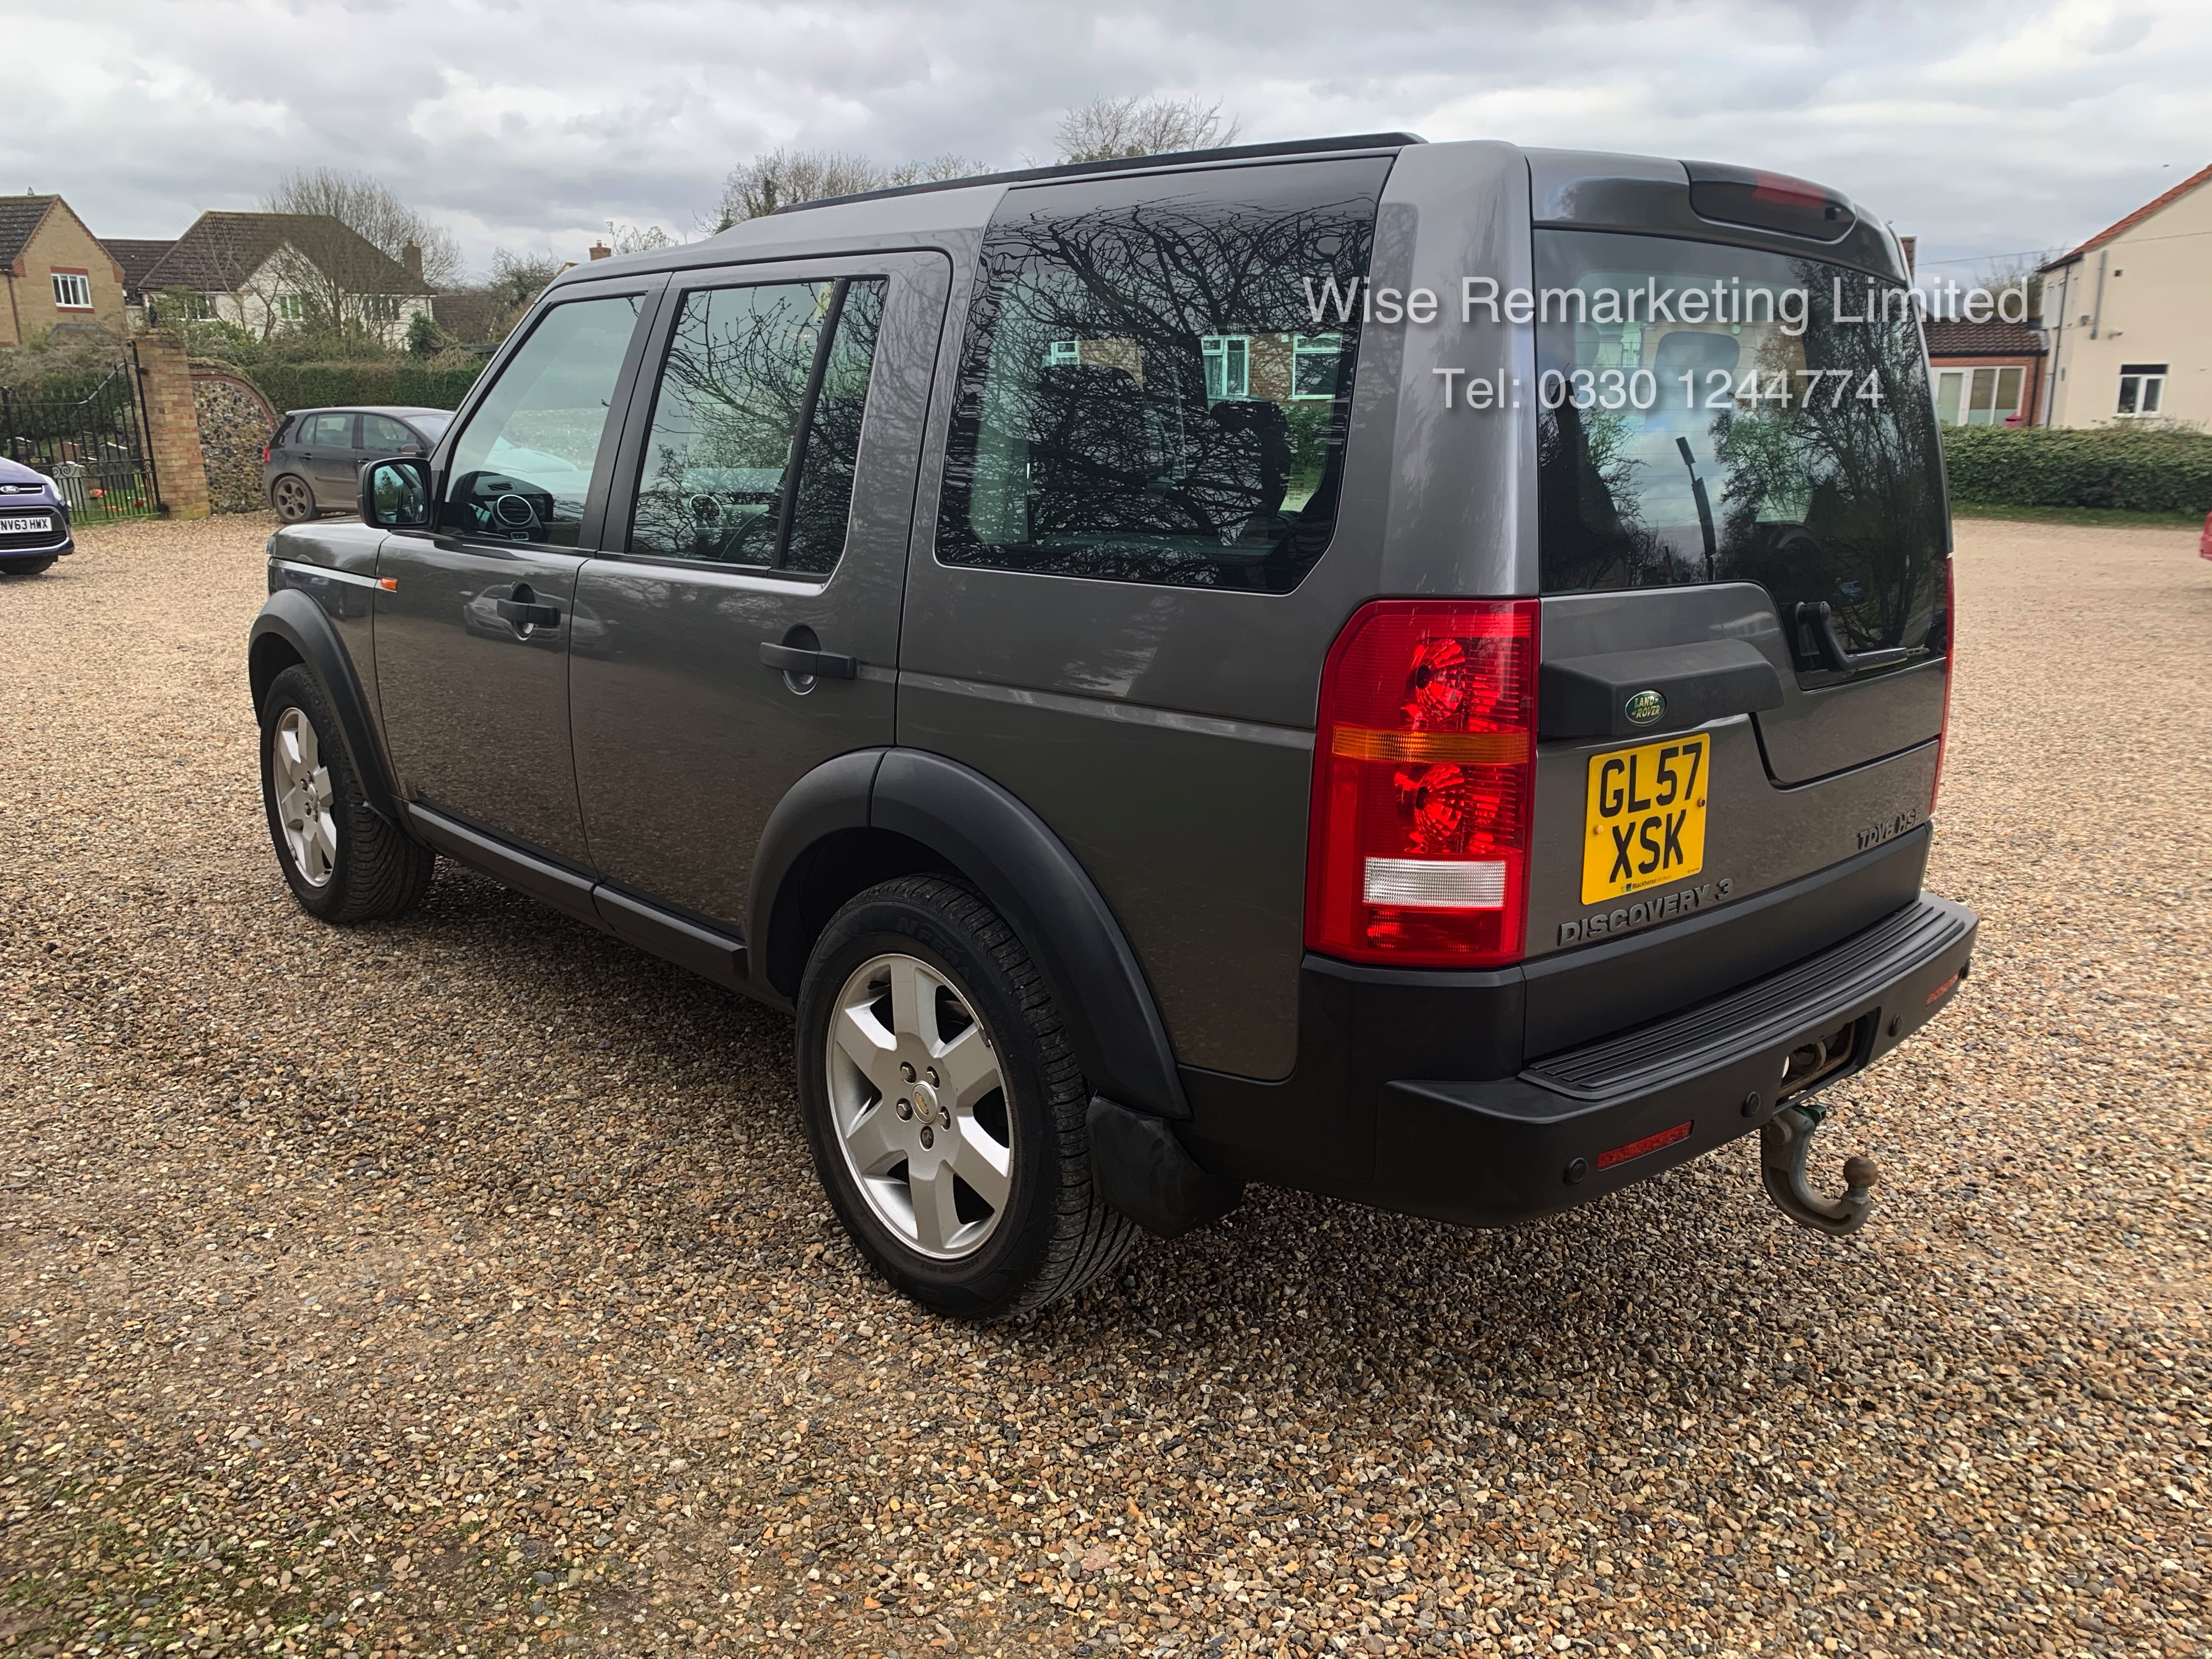 Land Rover Discovery 2.7 TDV6 HSE - Automatic - 2008 Reg - Full Leather - 7 Seater - Sat Nav - - Image 4 of 31